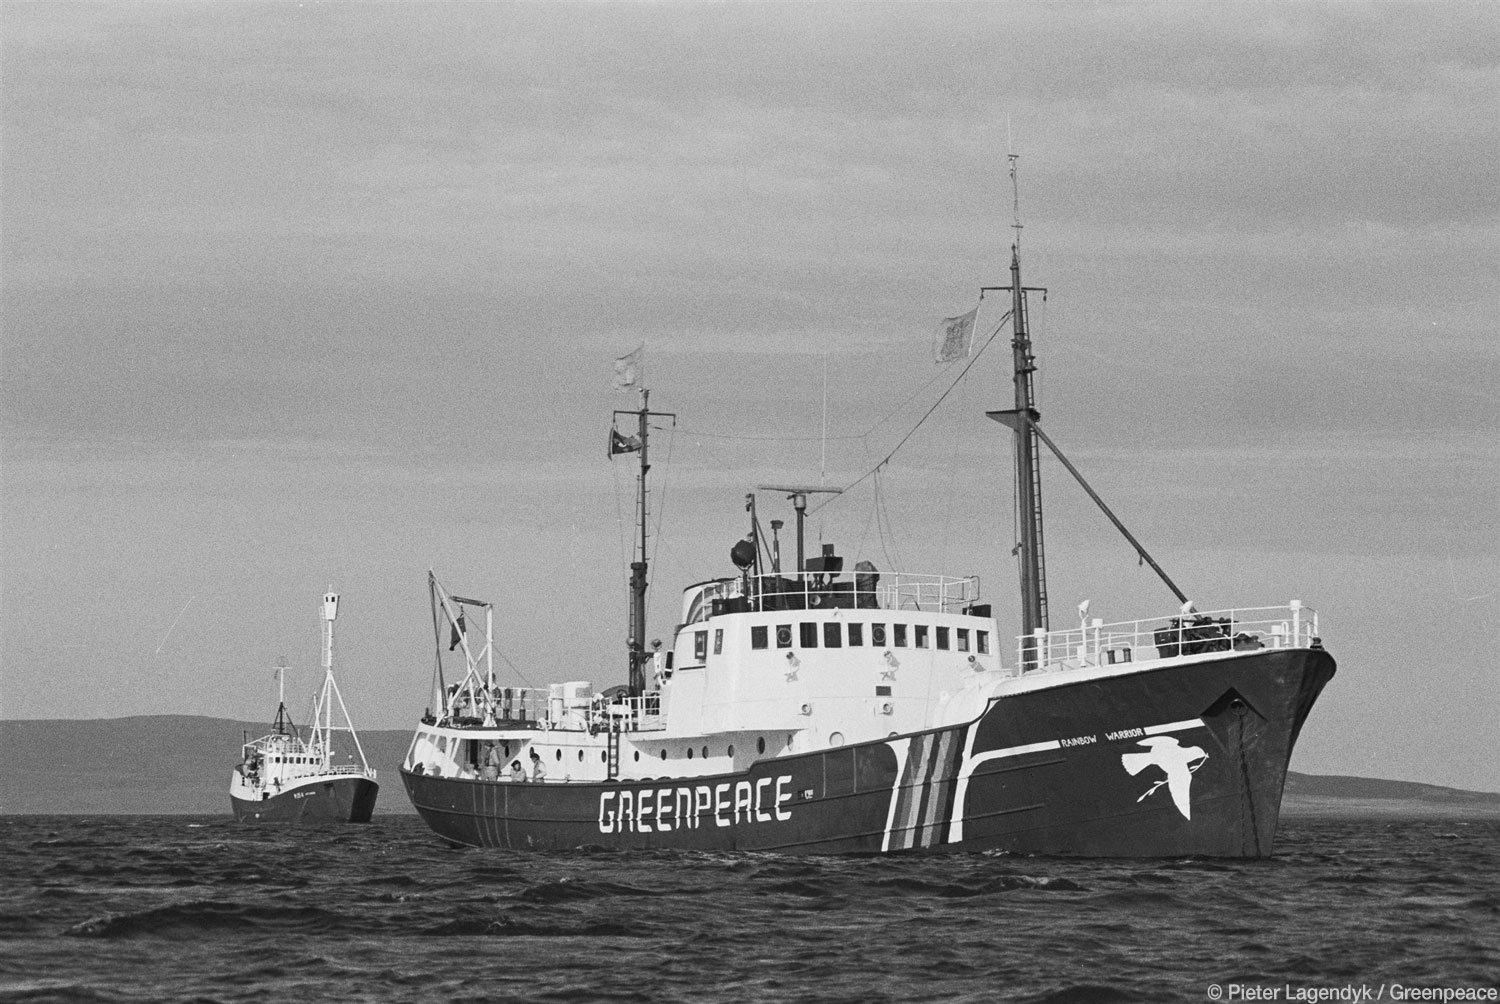 Fotos históricas do Greenpeace